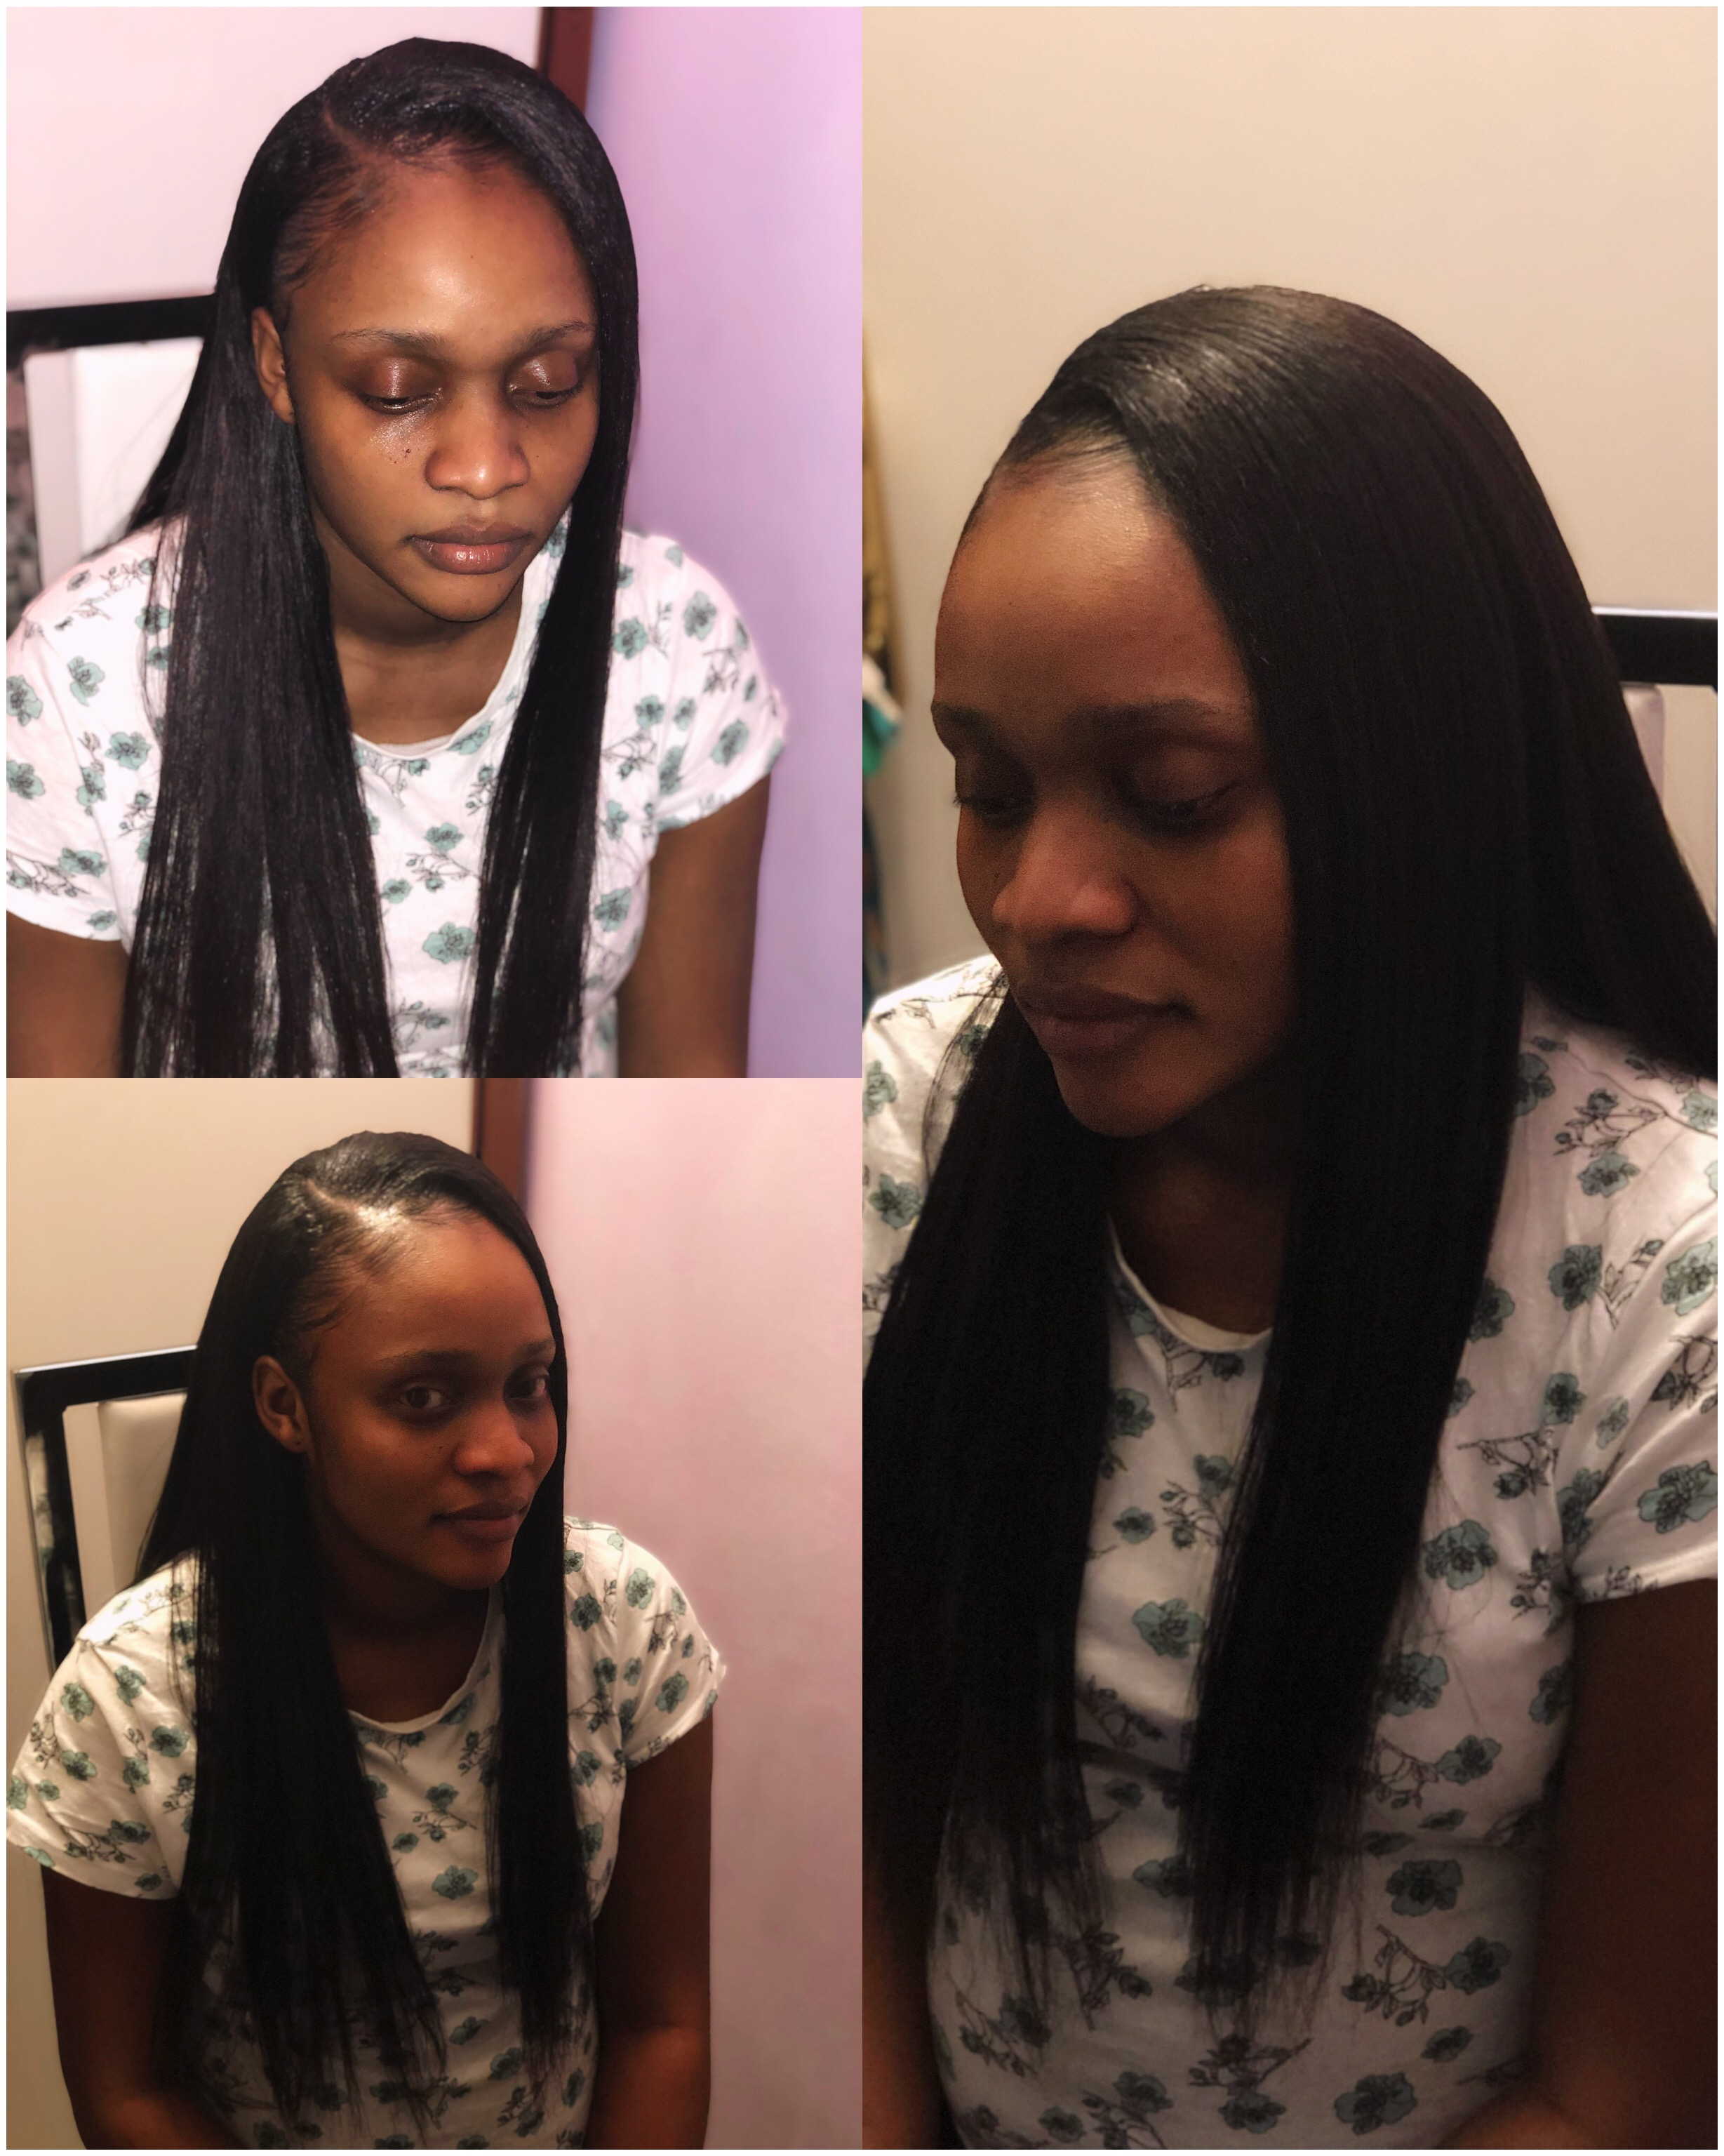 salon de coiffure afro tresse tresses box braids crochet braids vanilles tissages paris 75 77 78 91 92 93 94 95 KFNHOWQV